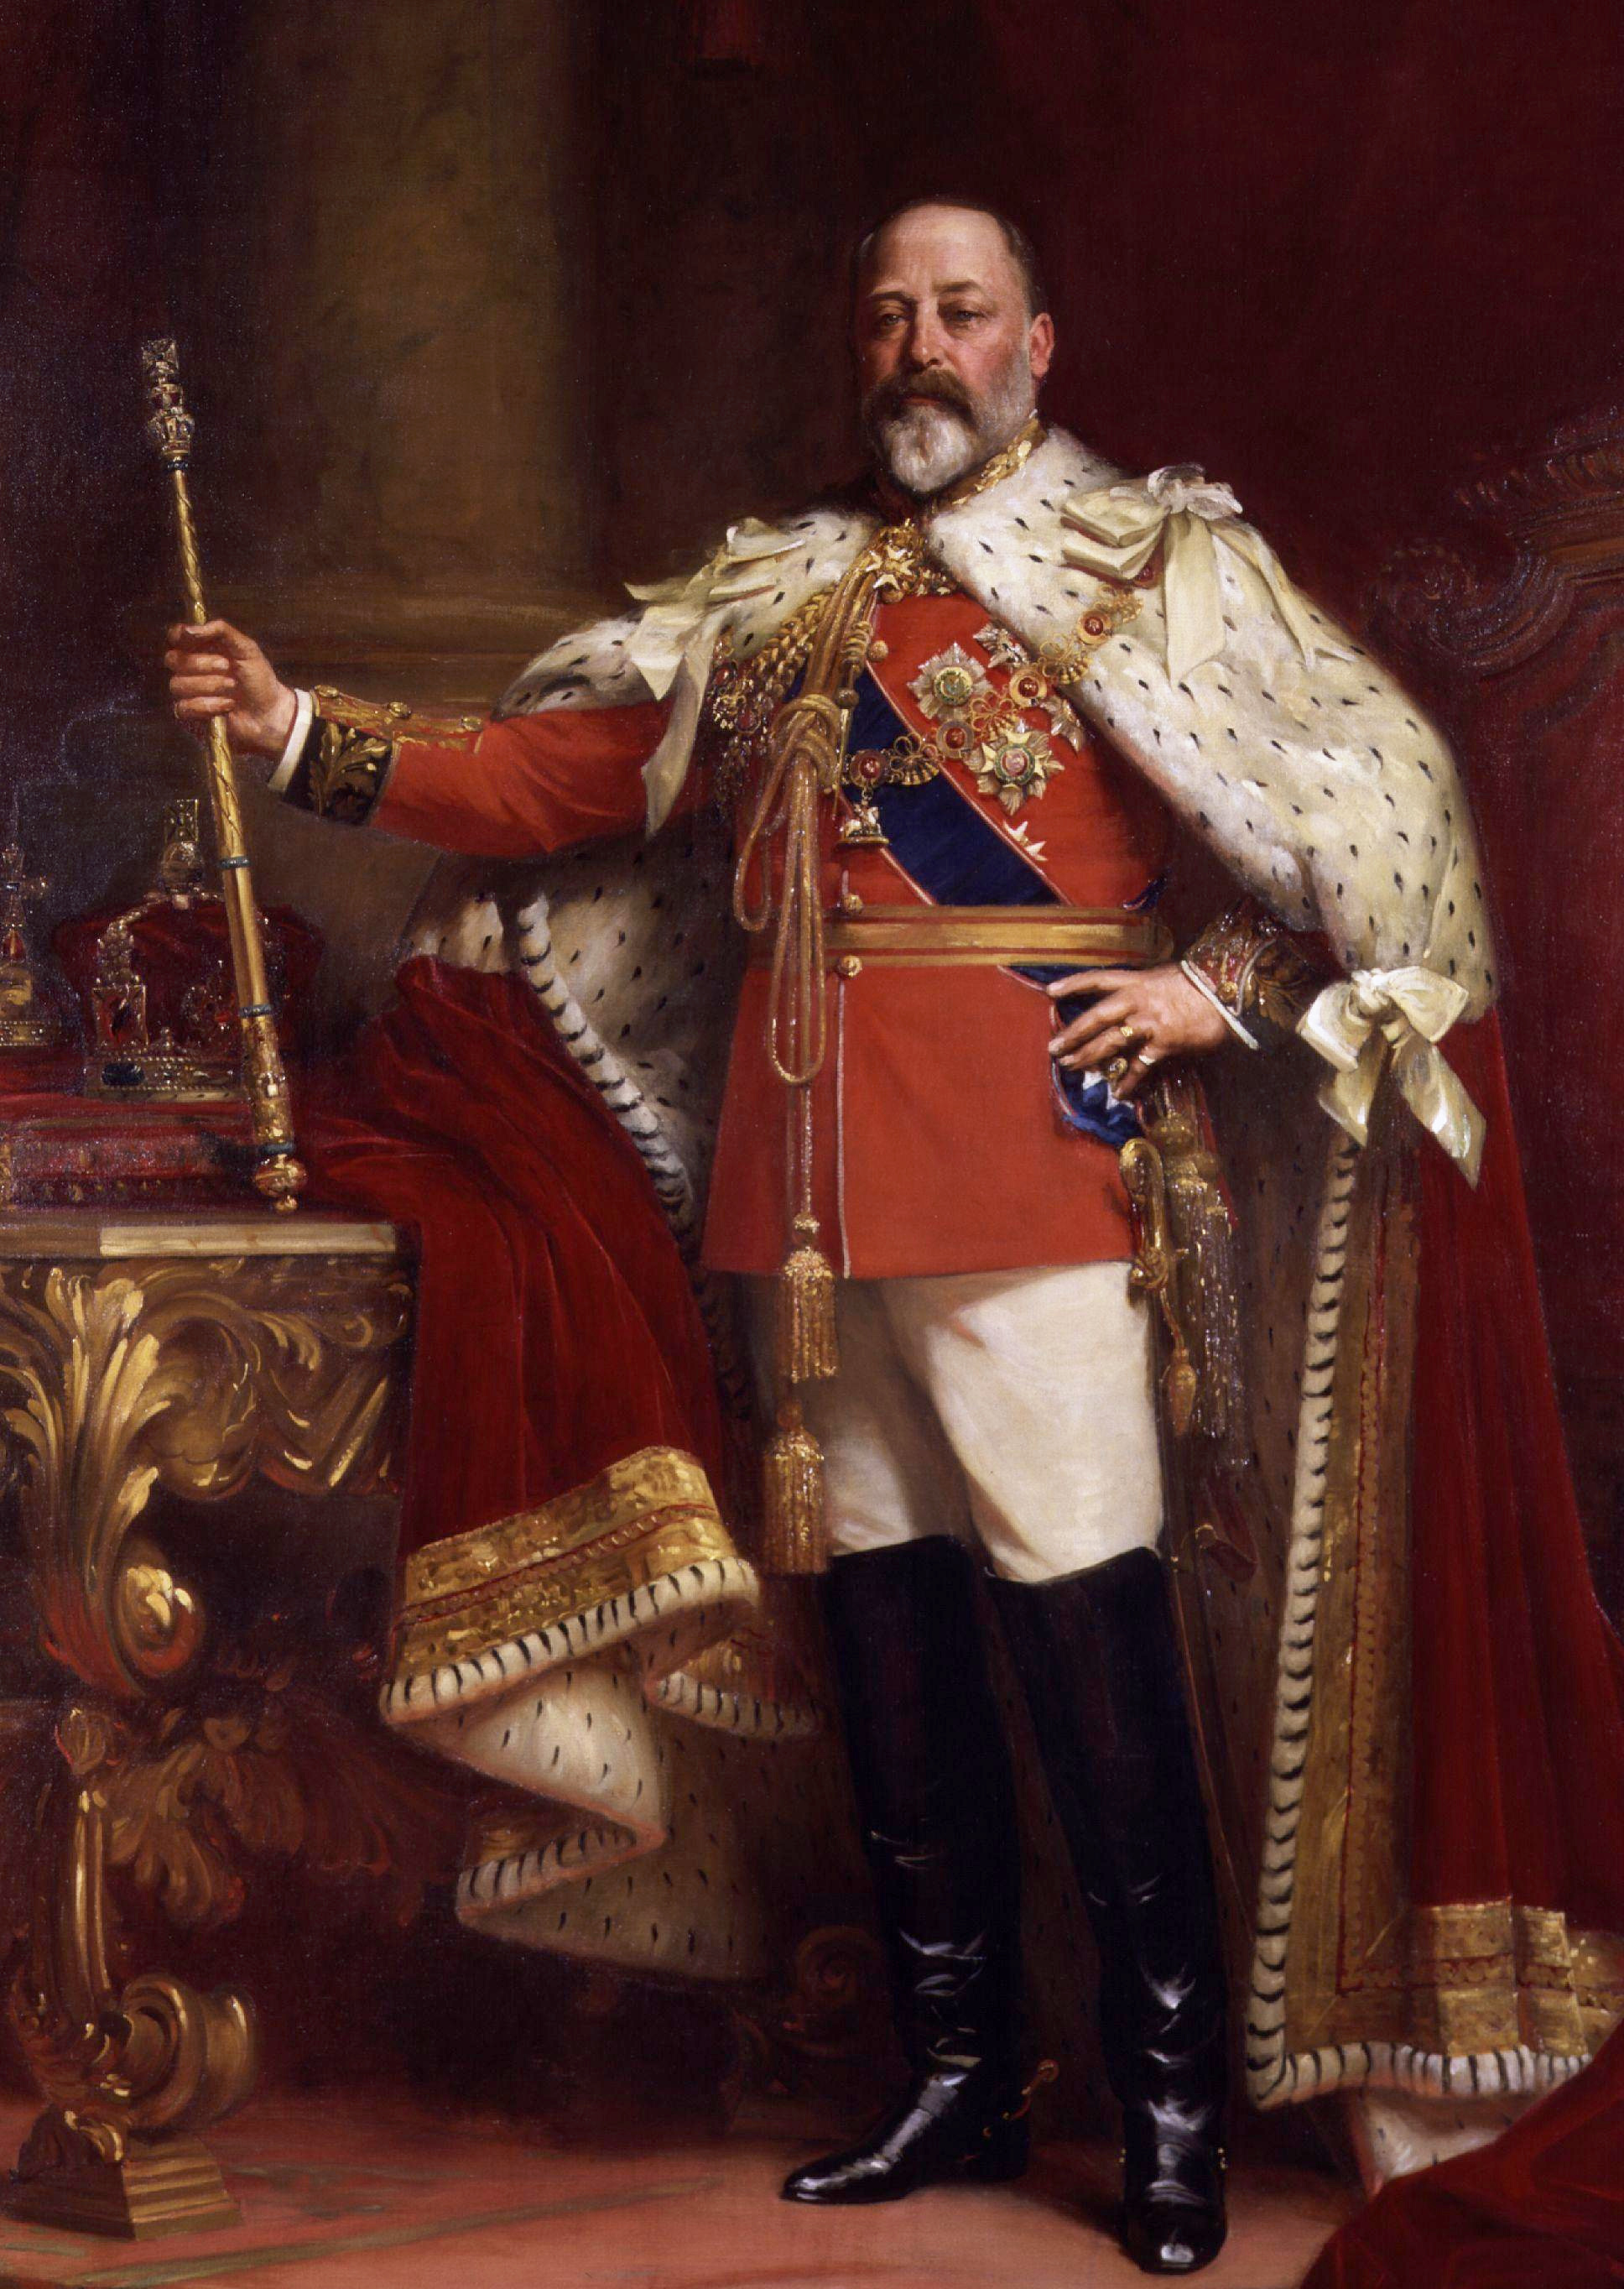 Edward_VII_in_coronation_robes.jpg